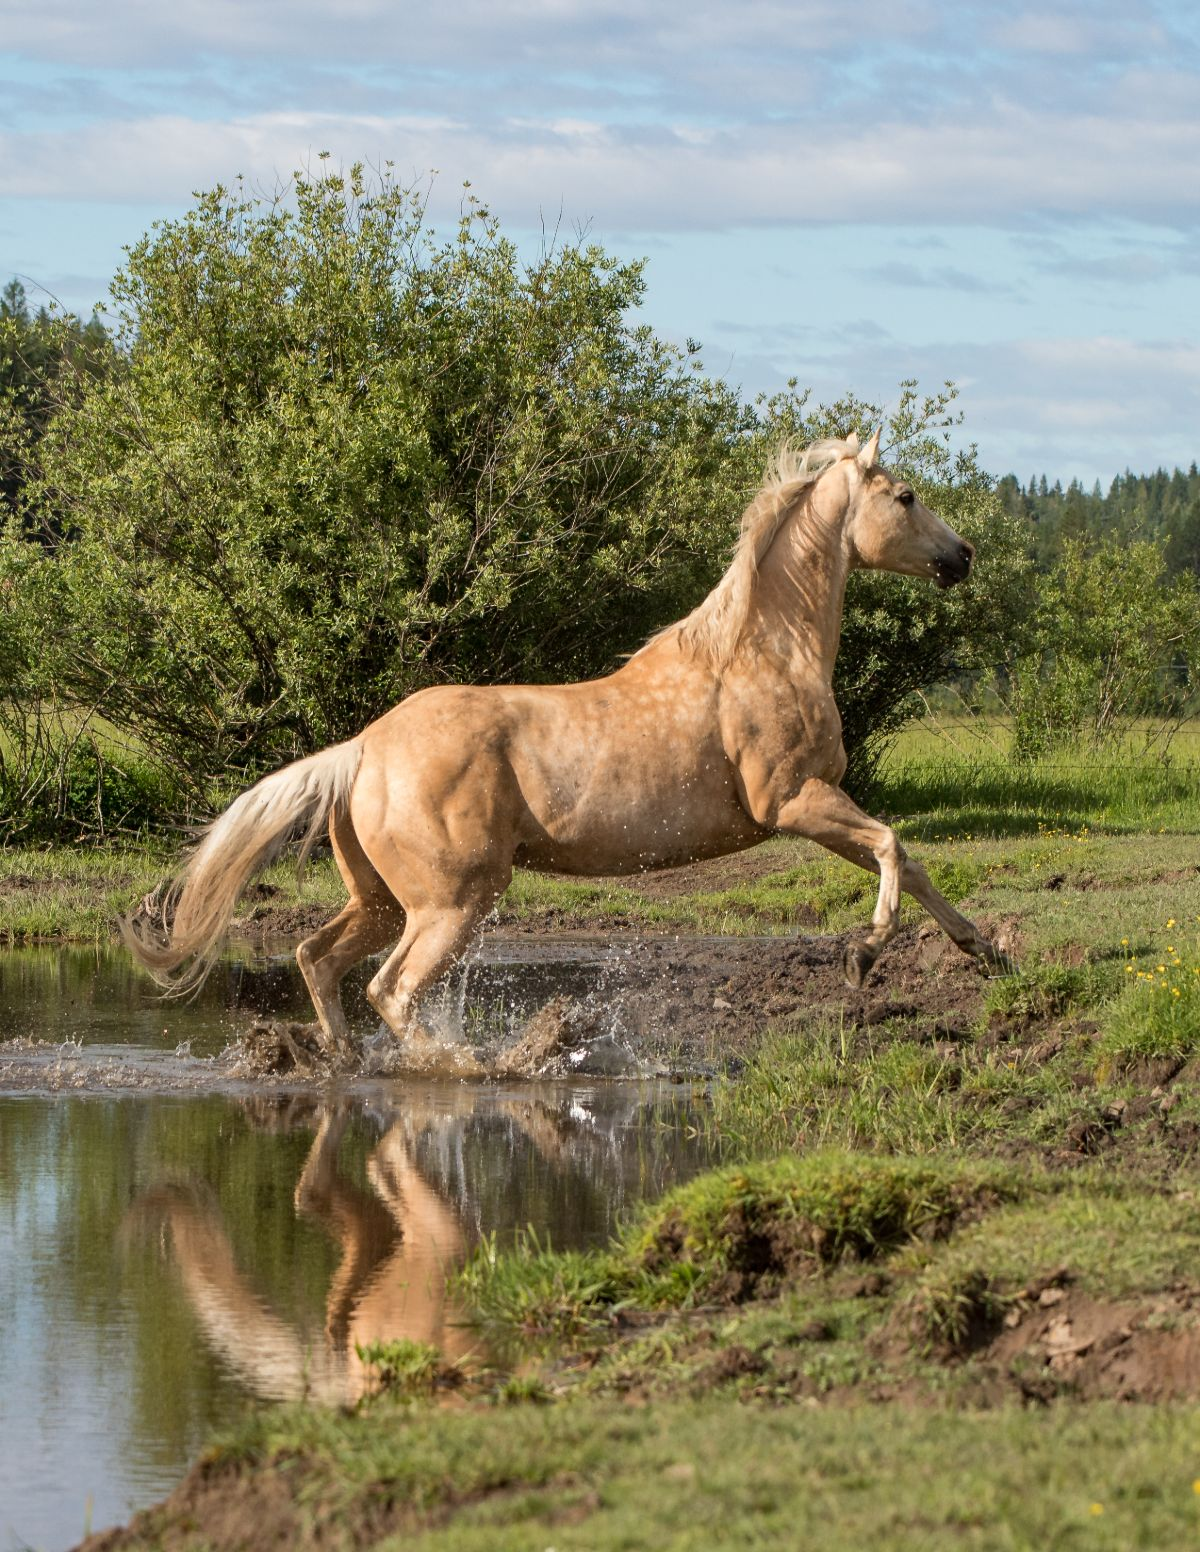 Palomino Quarter Horse Gelding jumping out of a creek onto a grassy bank